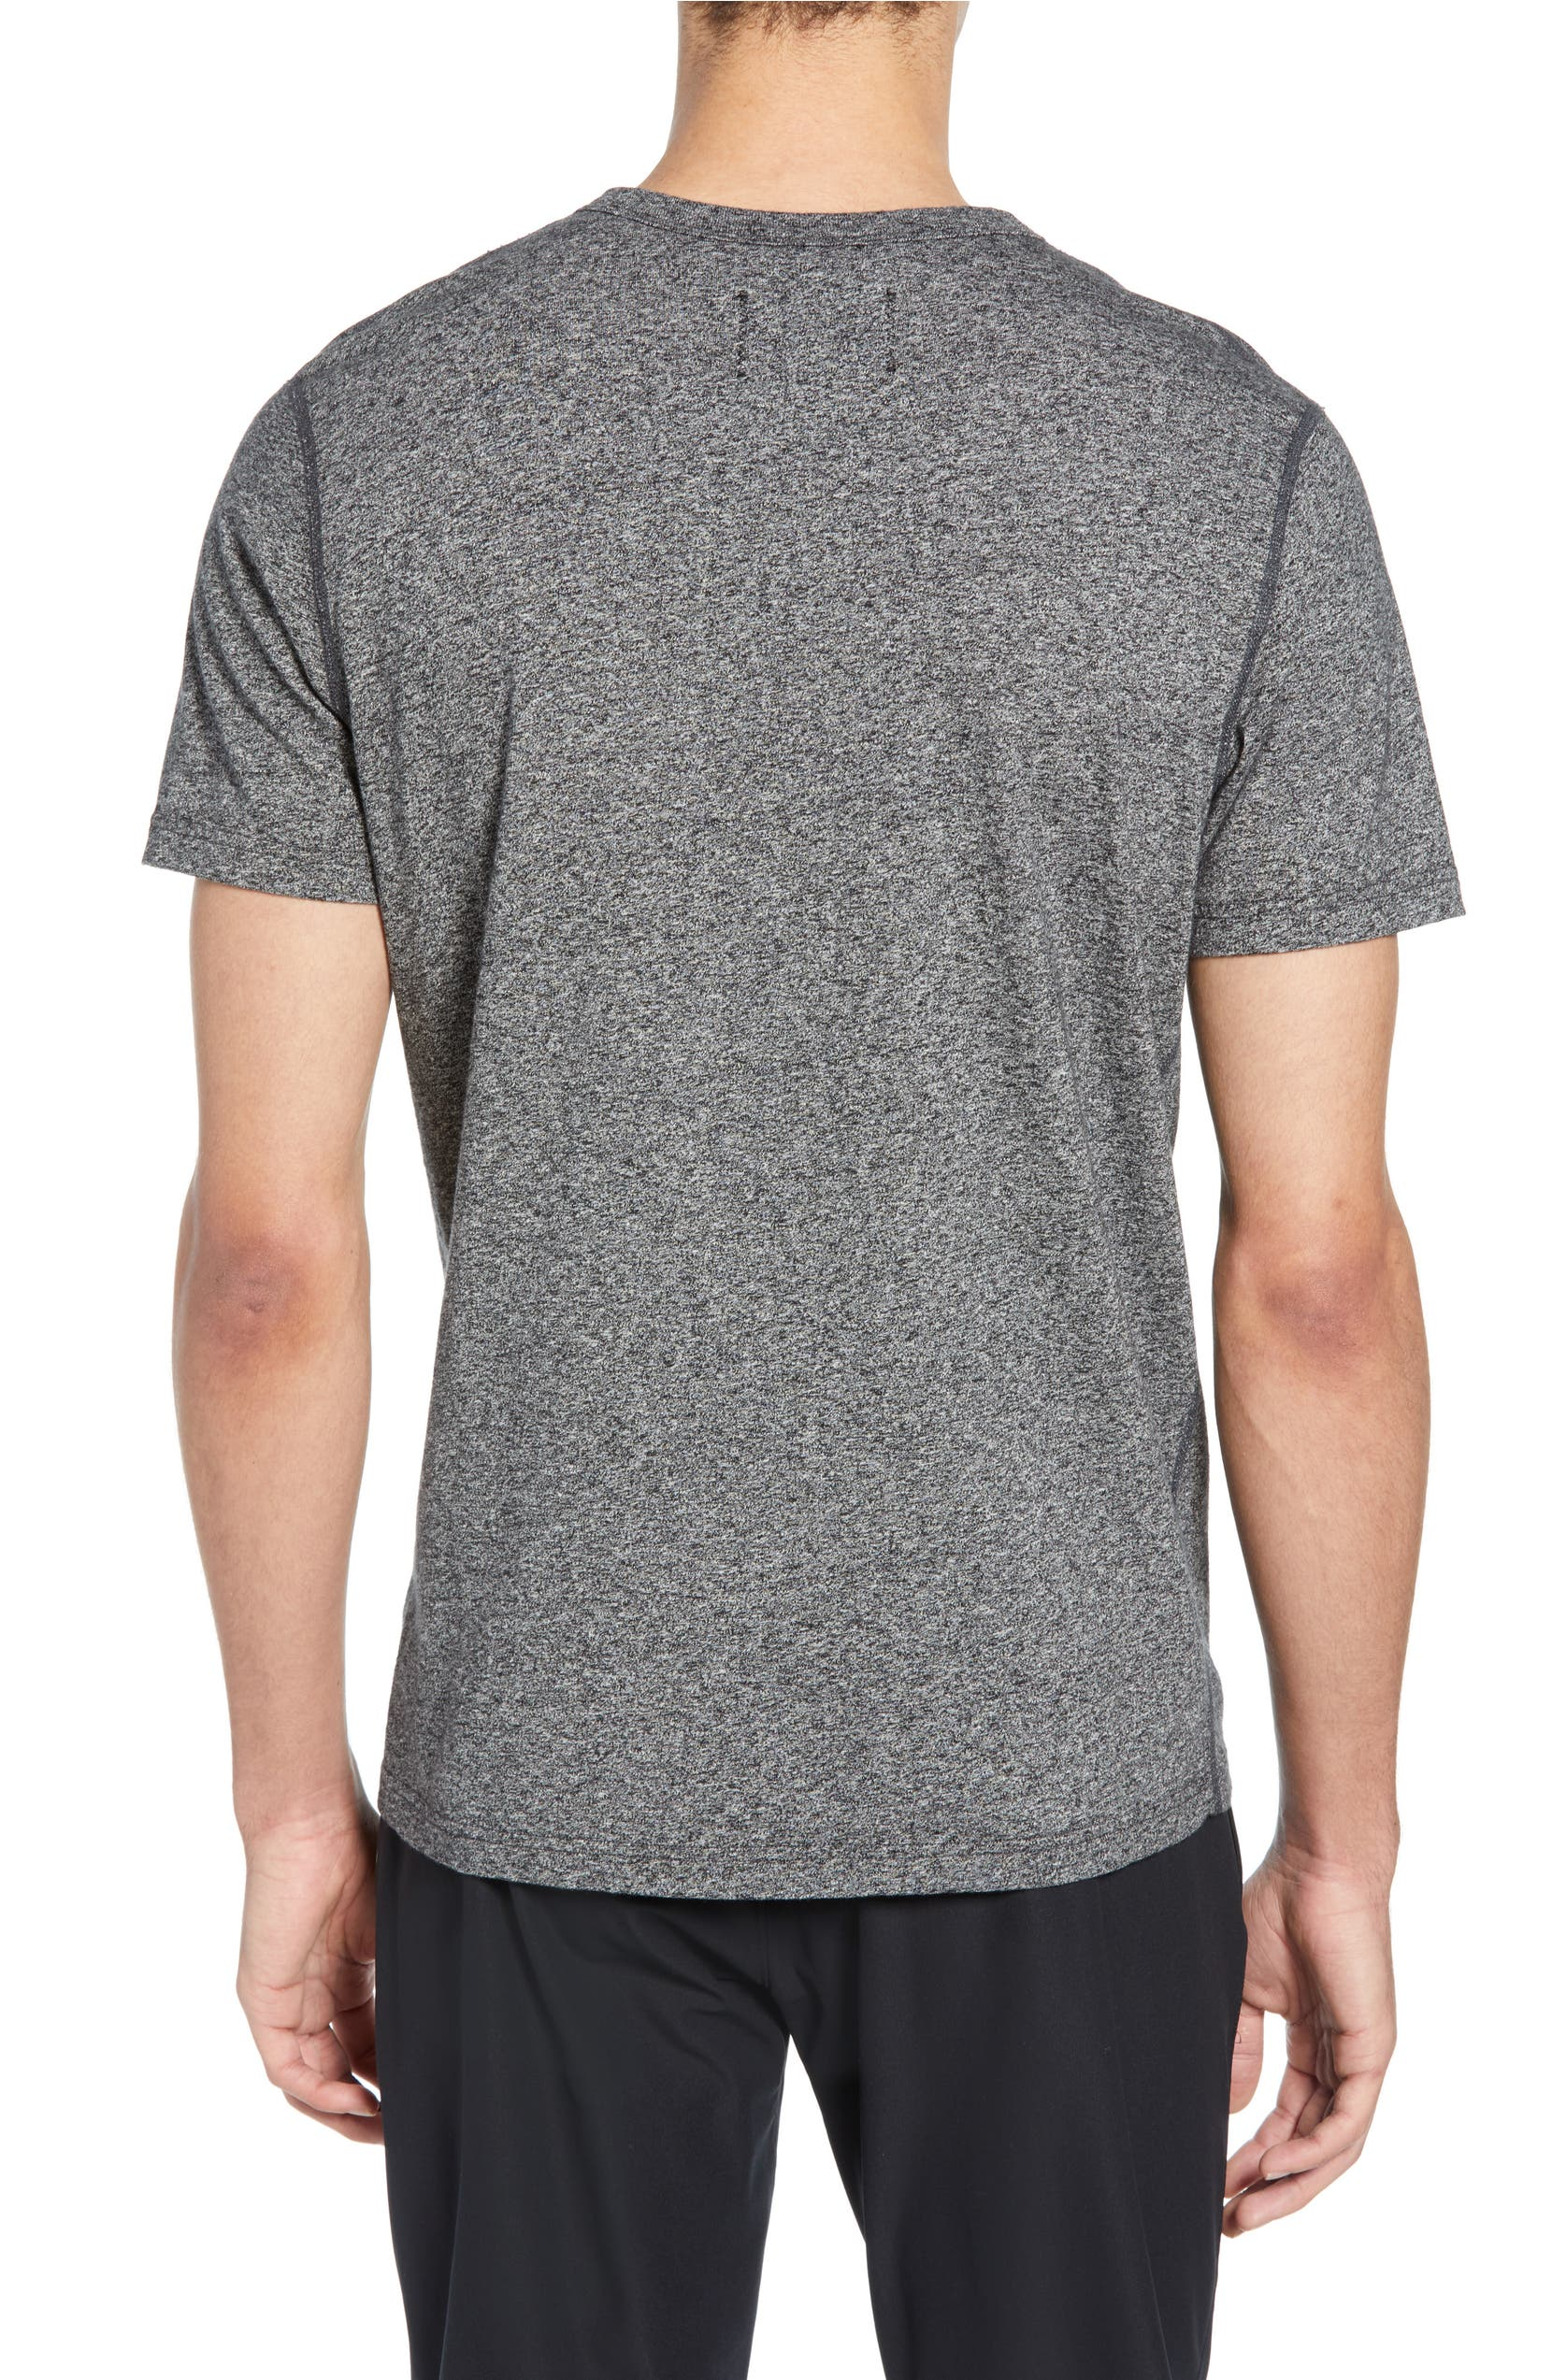 acdc1f6863 Reigning Champ Short Sleeve Crewneck T-Shirt